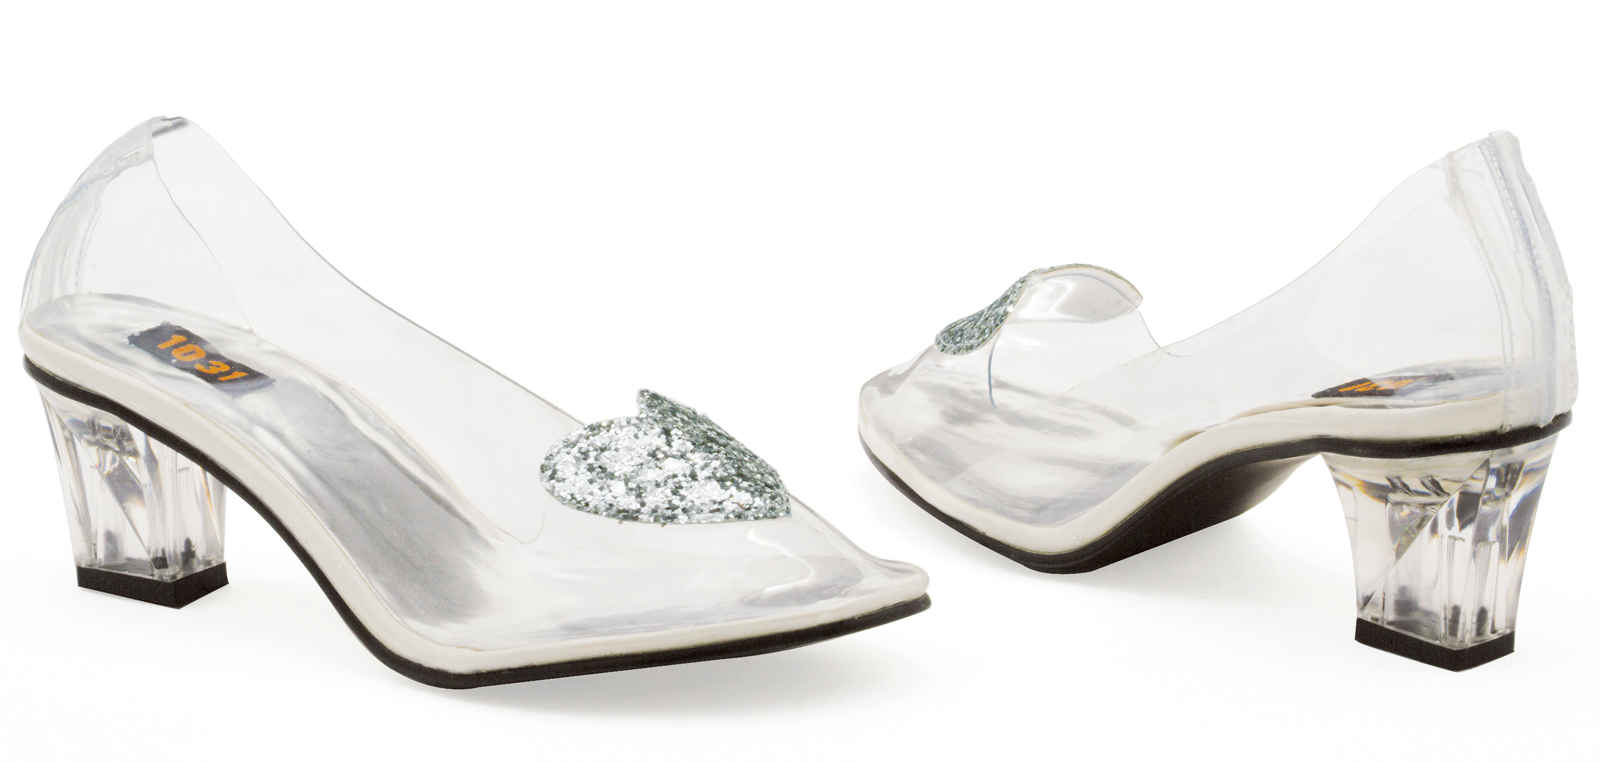 Cinderella Adult Glass Slippers image